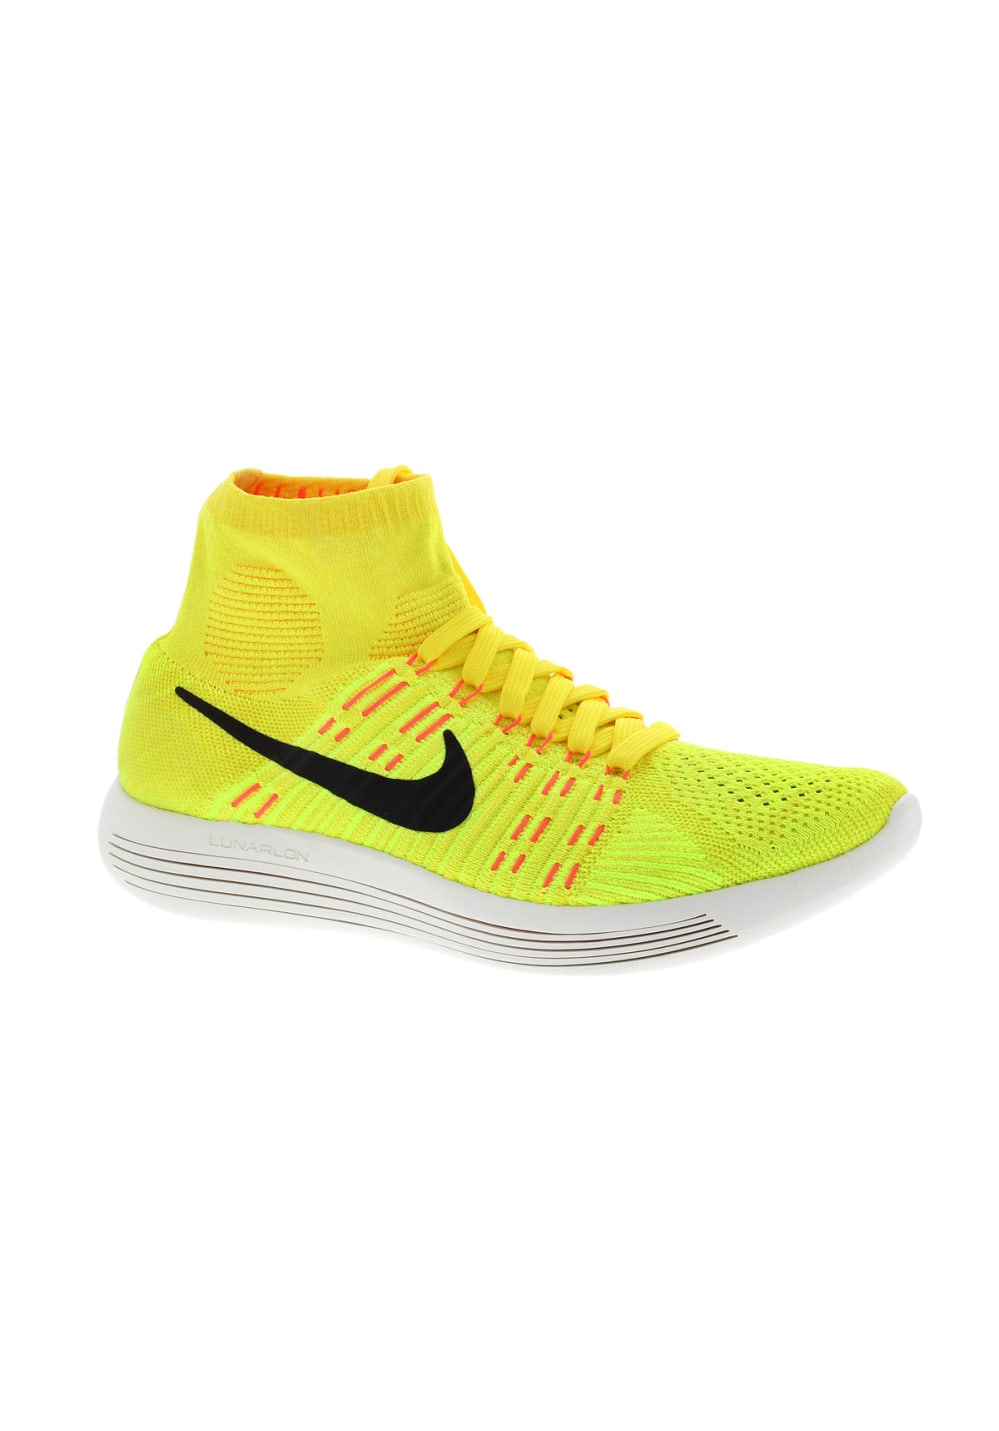 official photos 5b725 32f1f Nike Flyknit Lunarepic - Running shoes for Women - Yellow